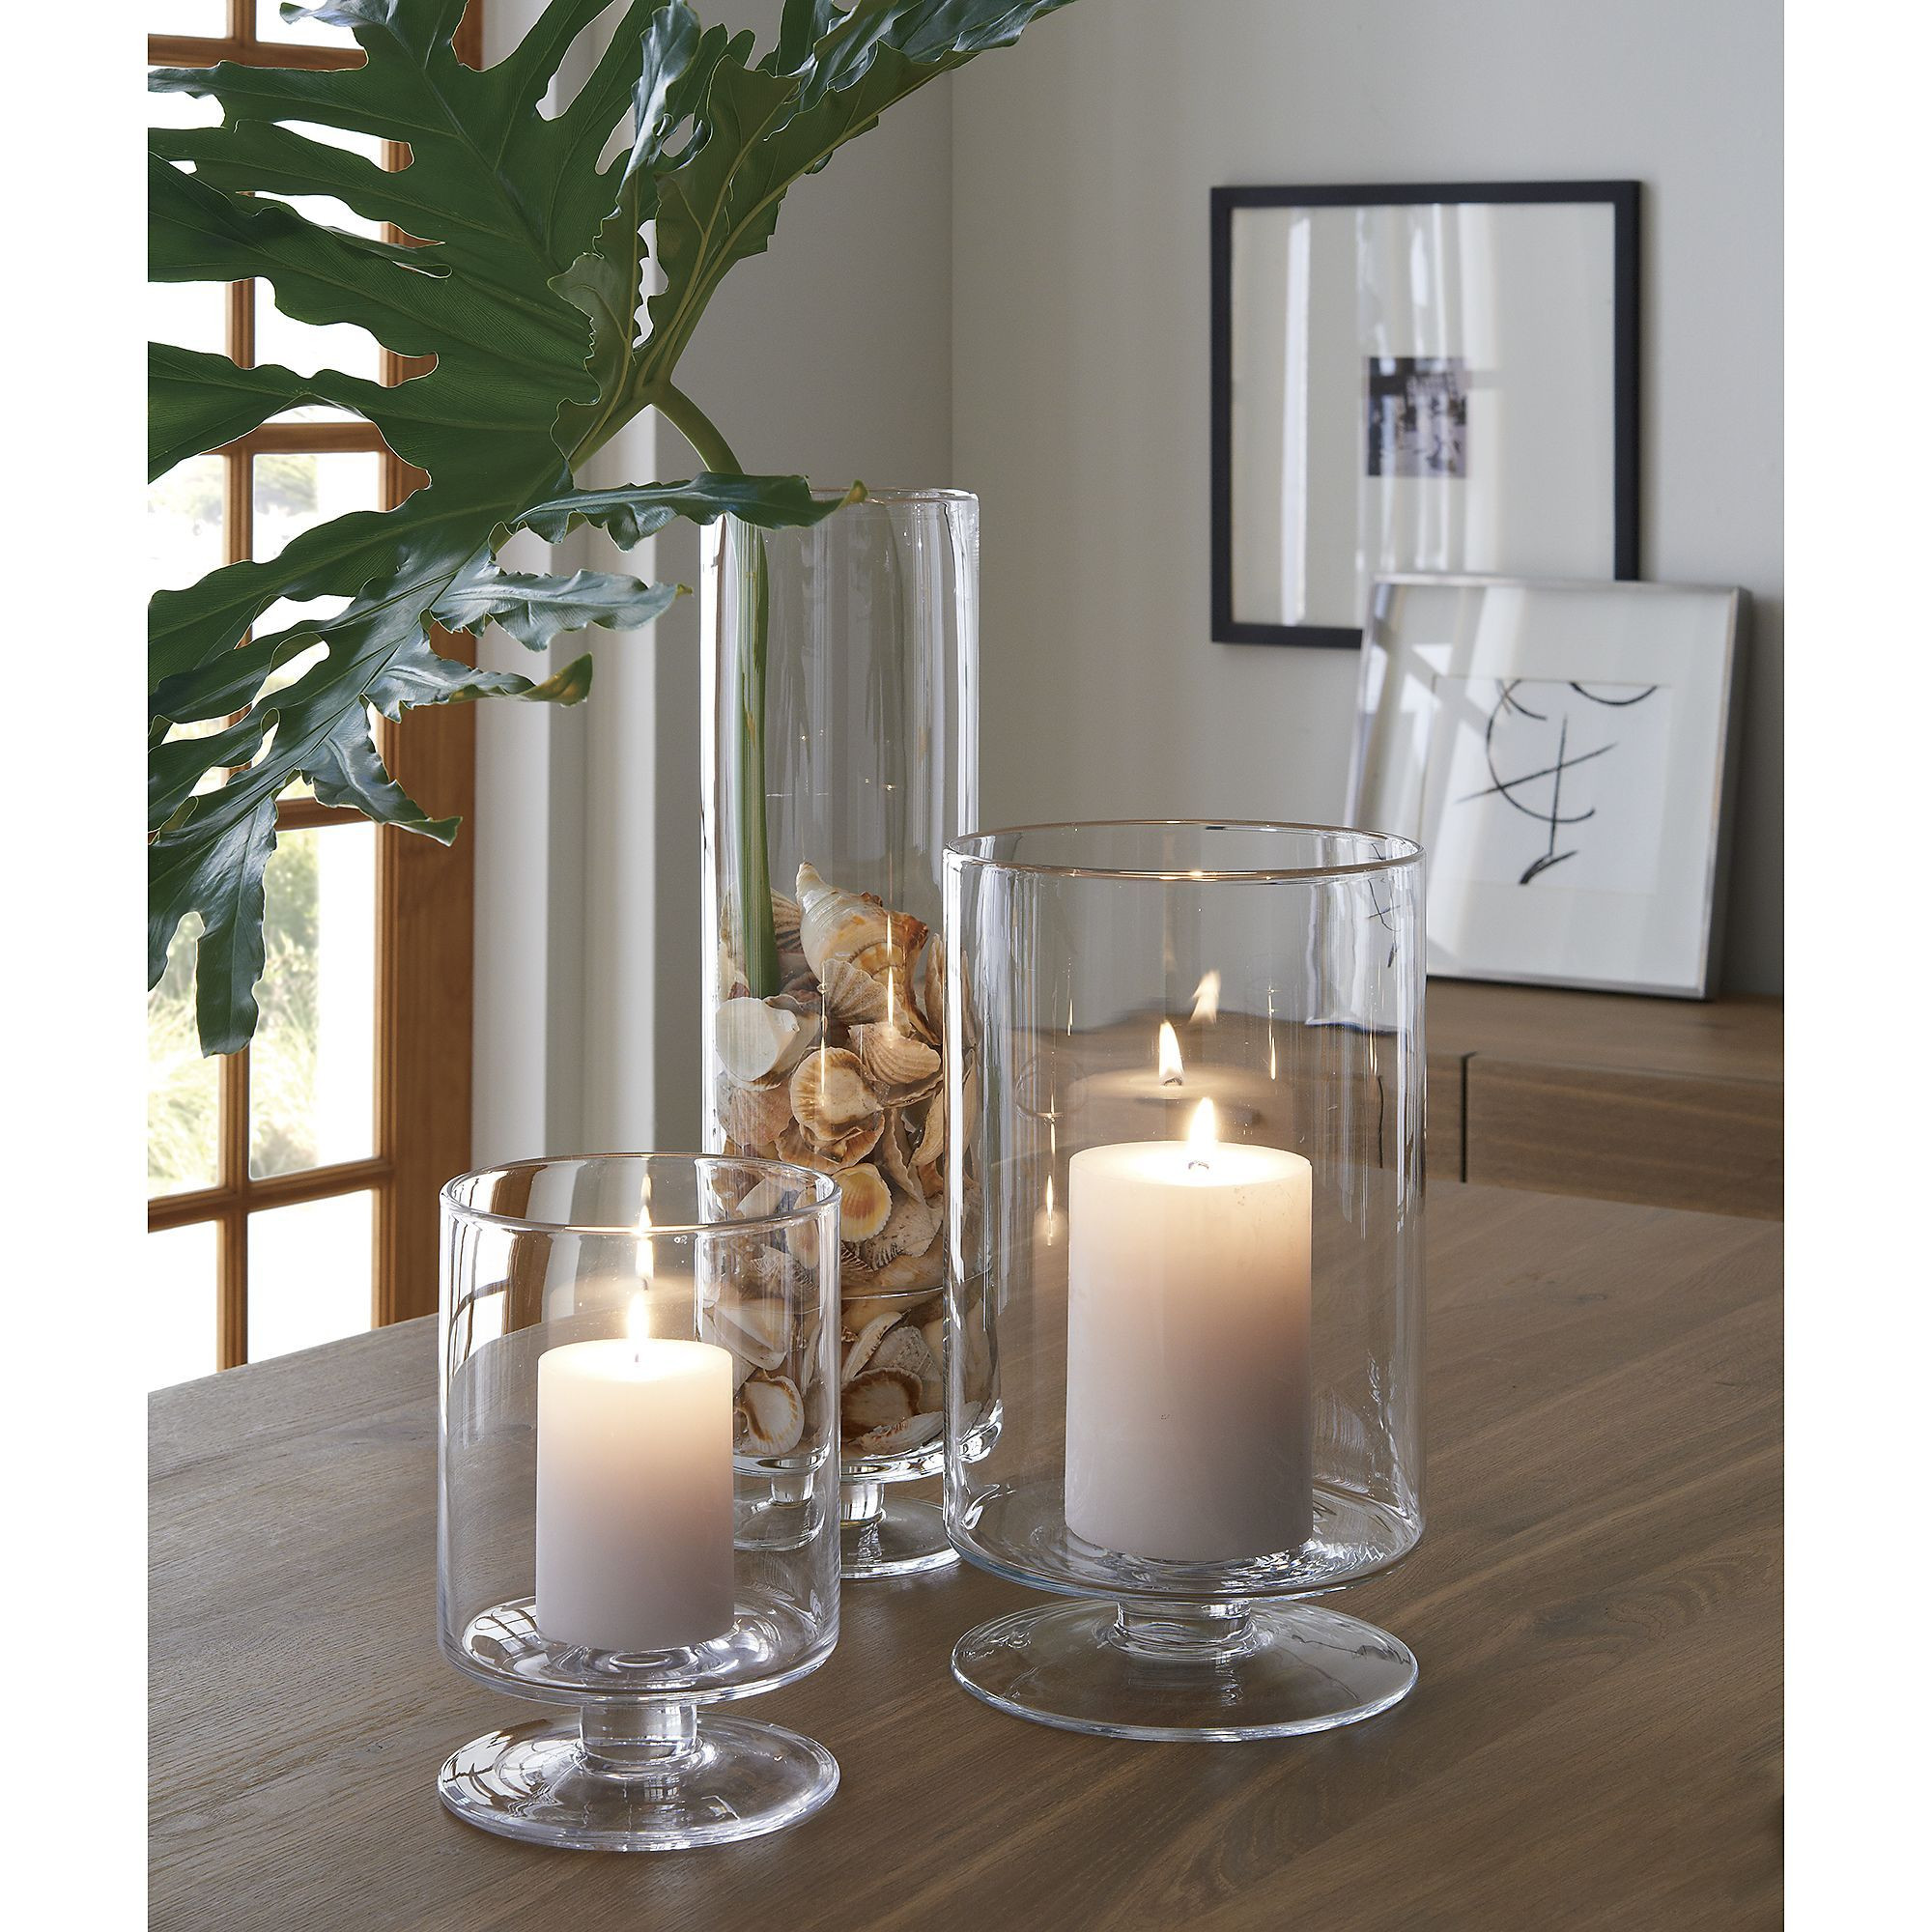 hurricane vase candle holder of london glass hurricane candle holders hurricane candle holders throughout london glass hurricane candle holders